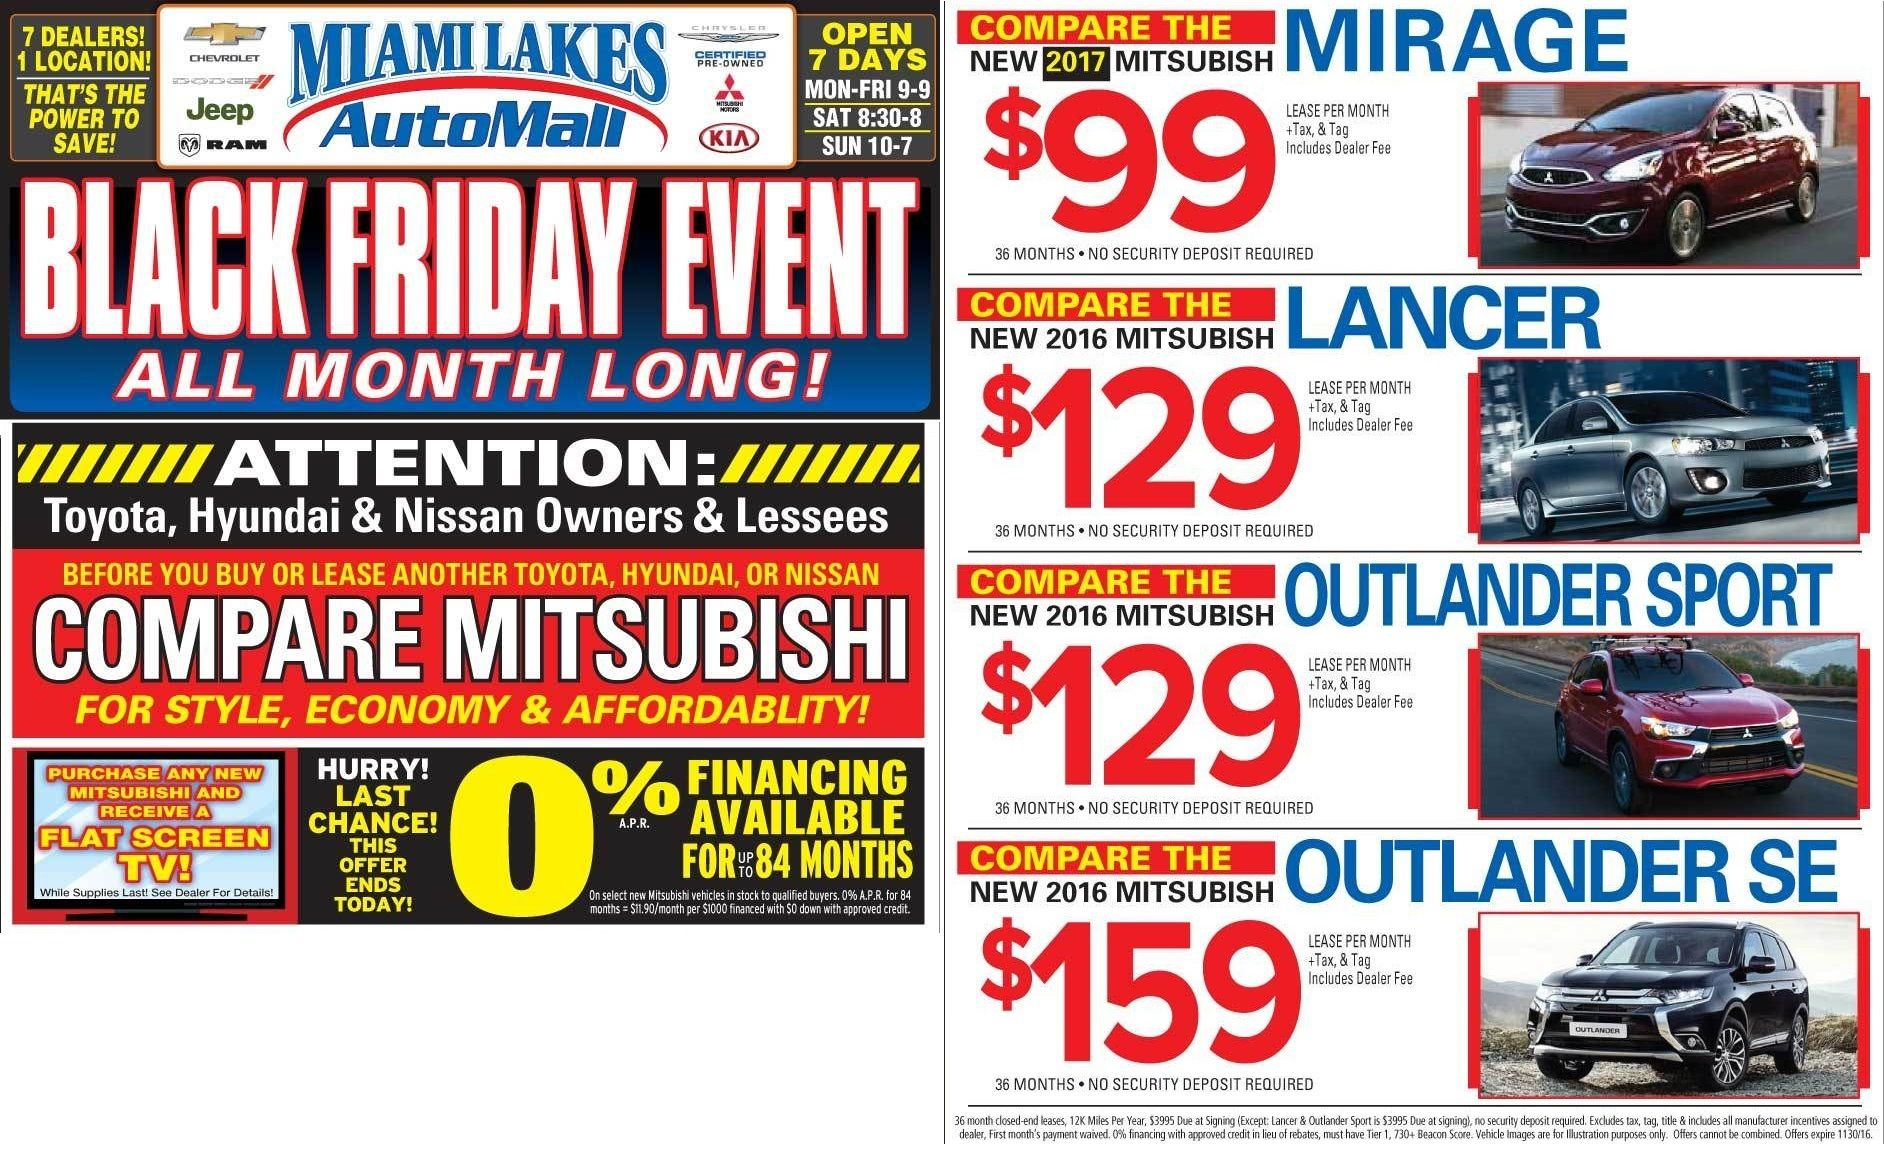 Month Long Black Friday Specials At Miami Lakes Mitsubishi Black Friday Specials Mitsubishi Black Friday